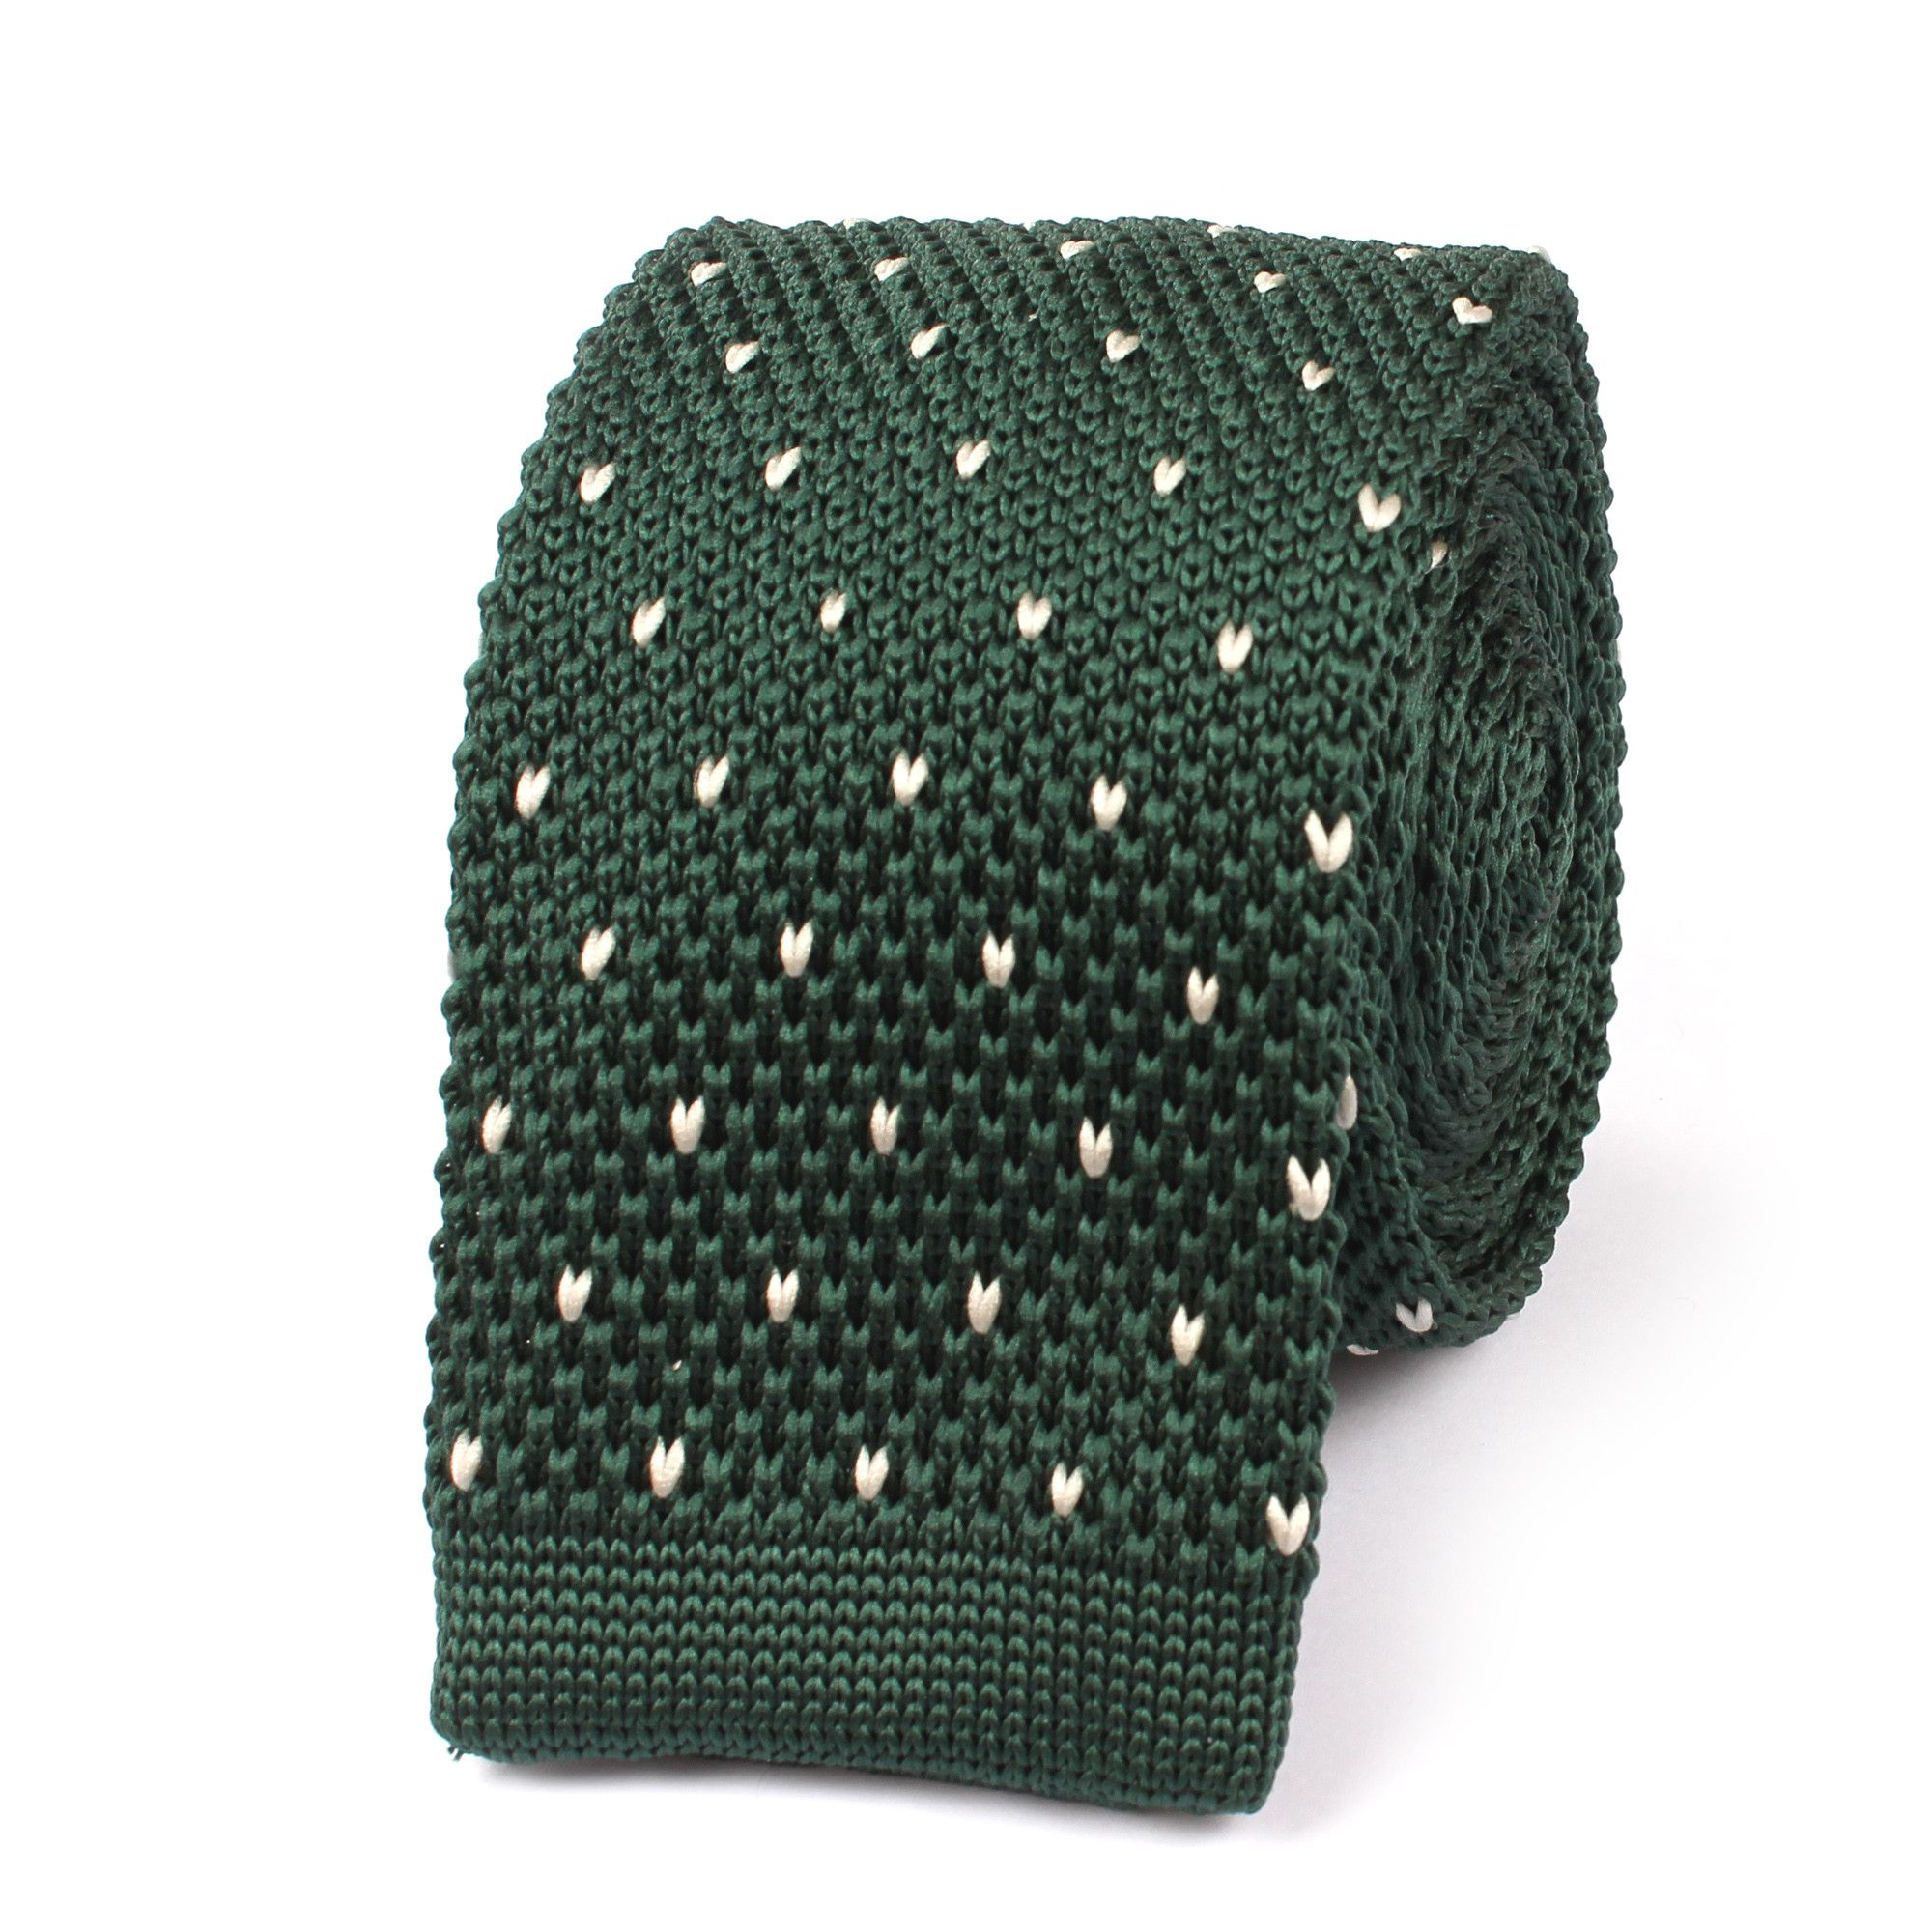 Forest Green & White Pattern Knitted Tie | Knit tie, White patterns ...